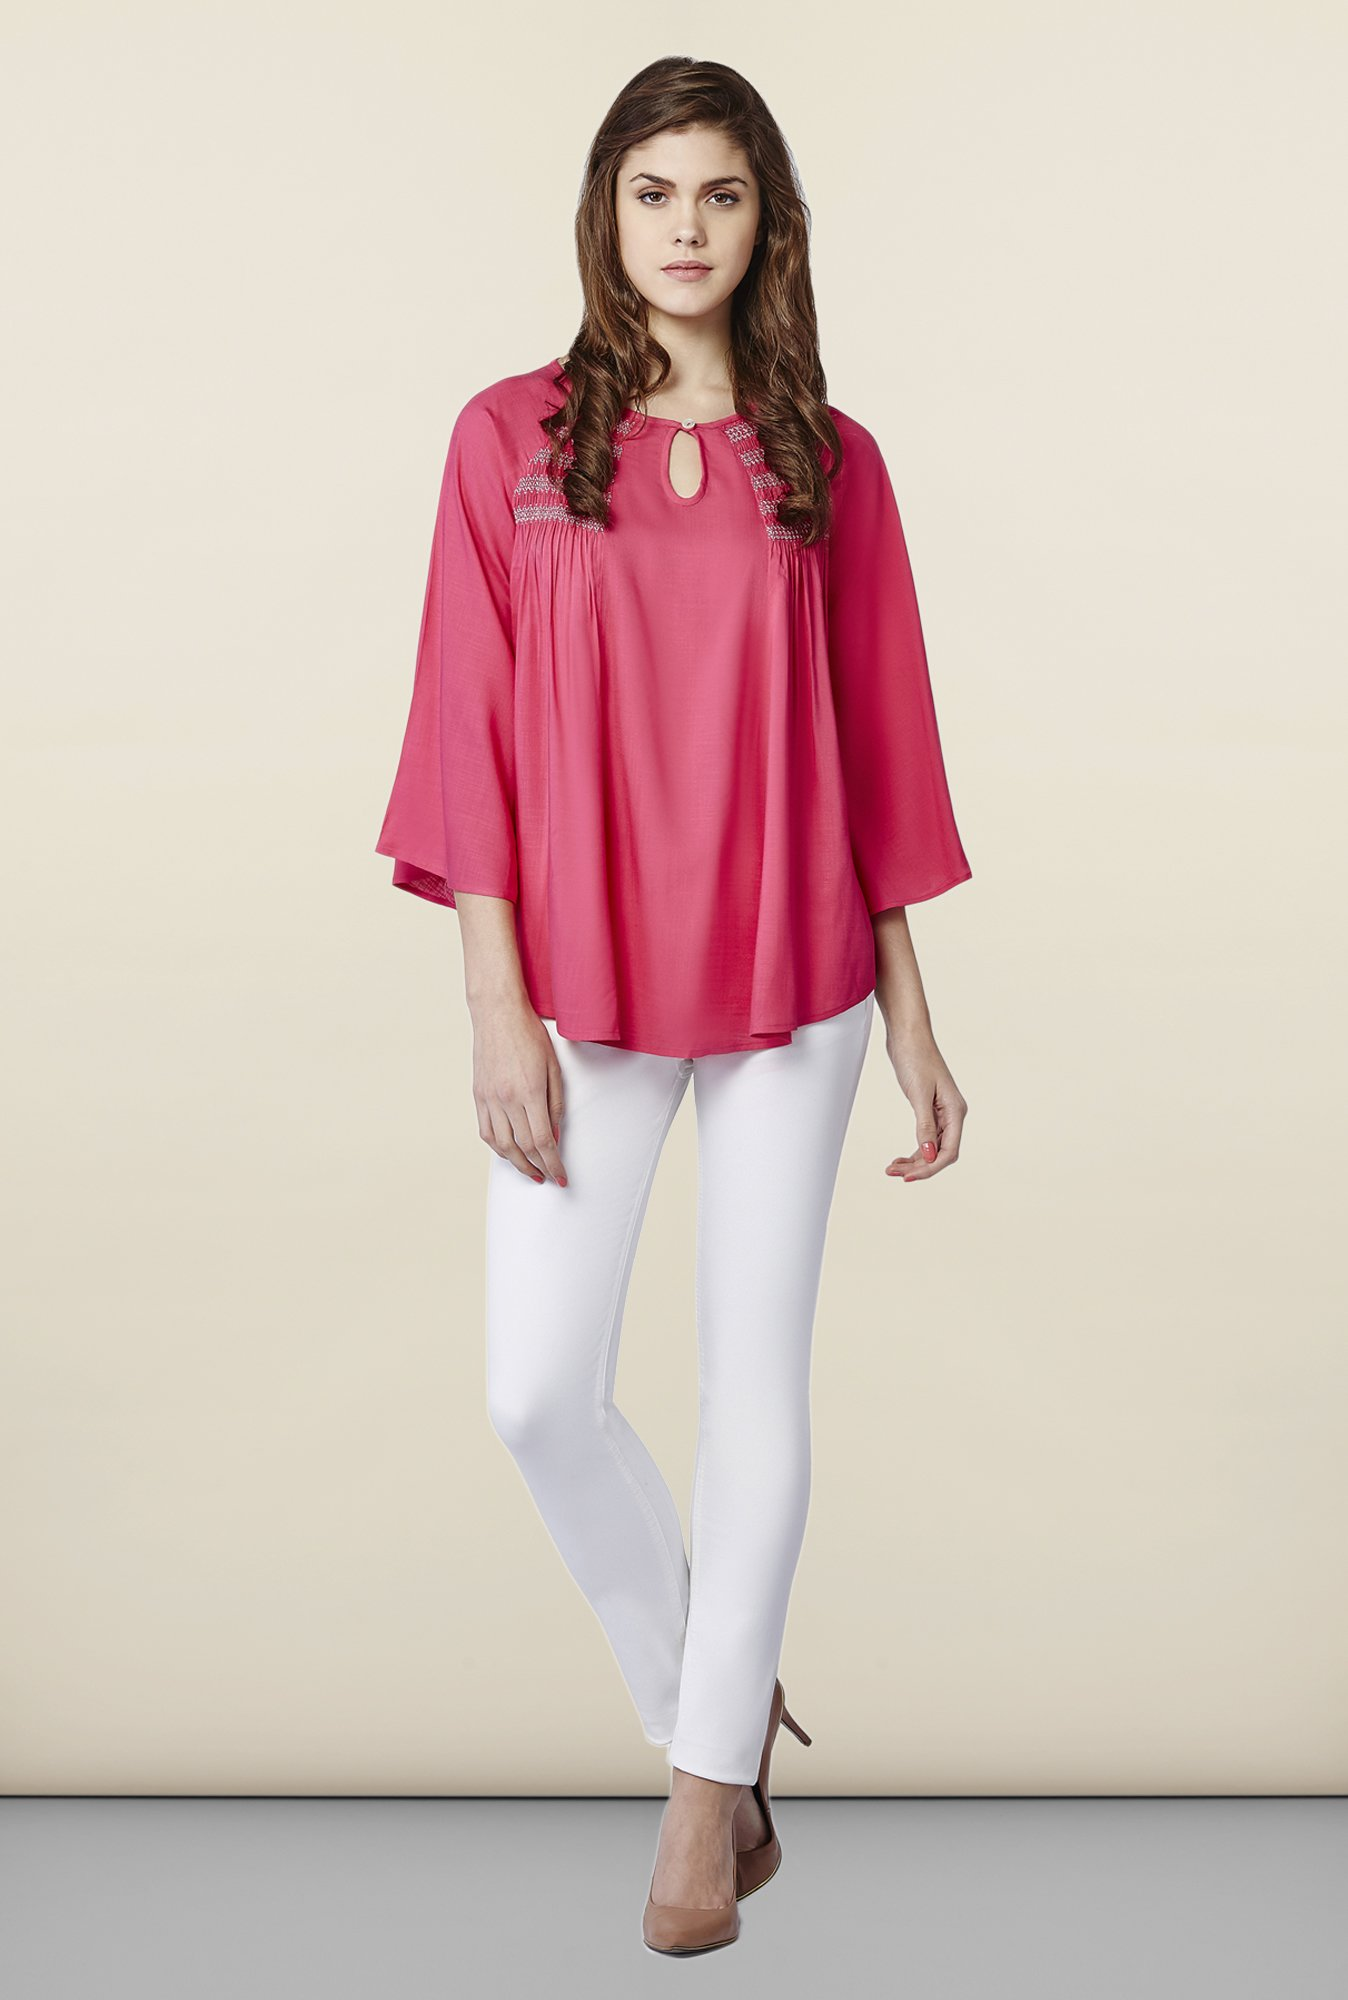 AND Rosa Solid Tunic